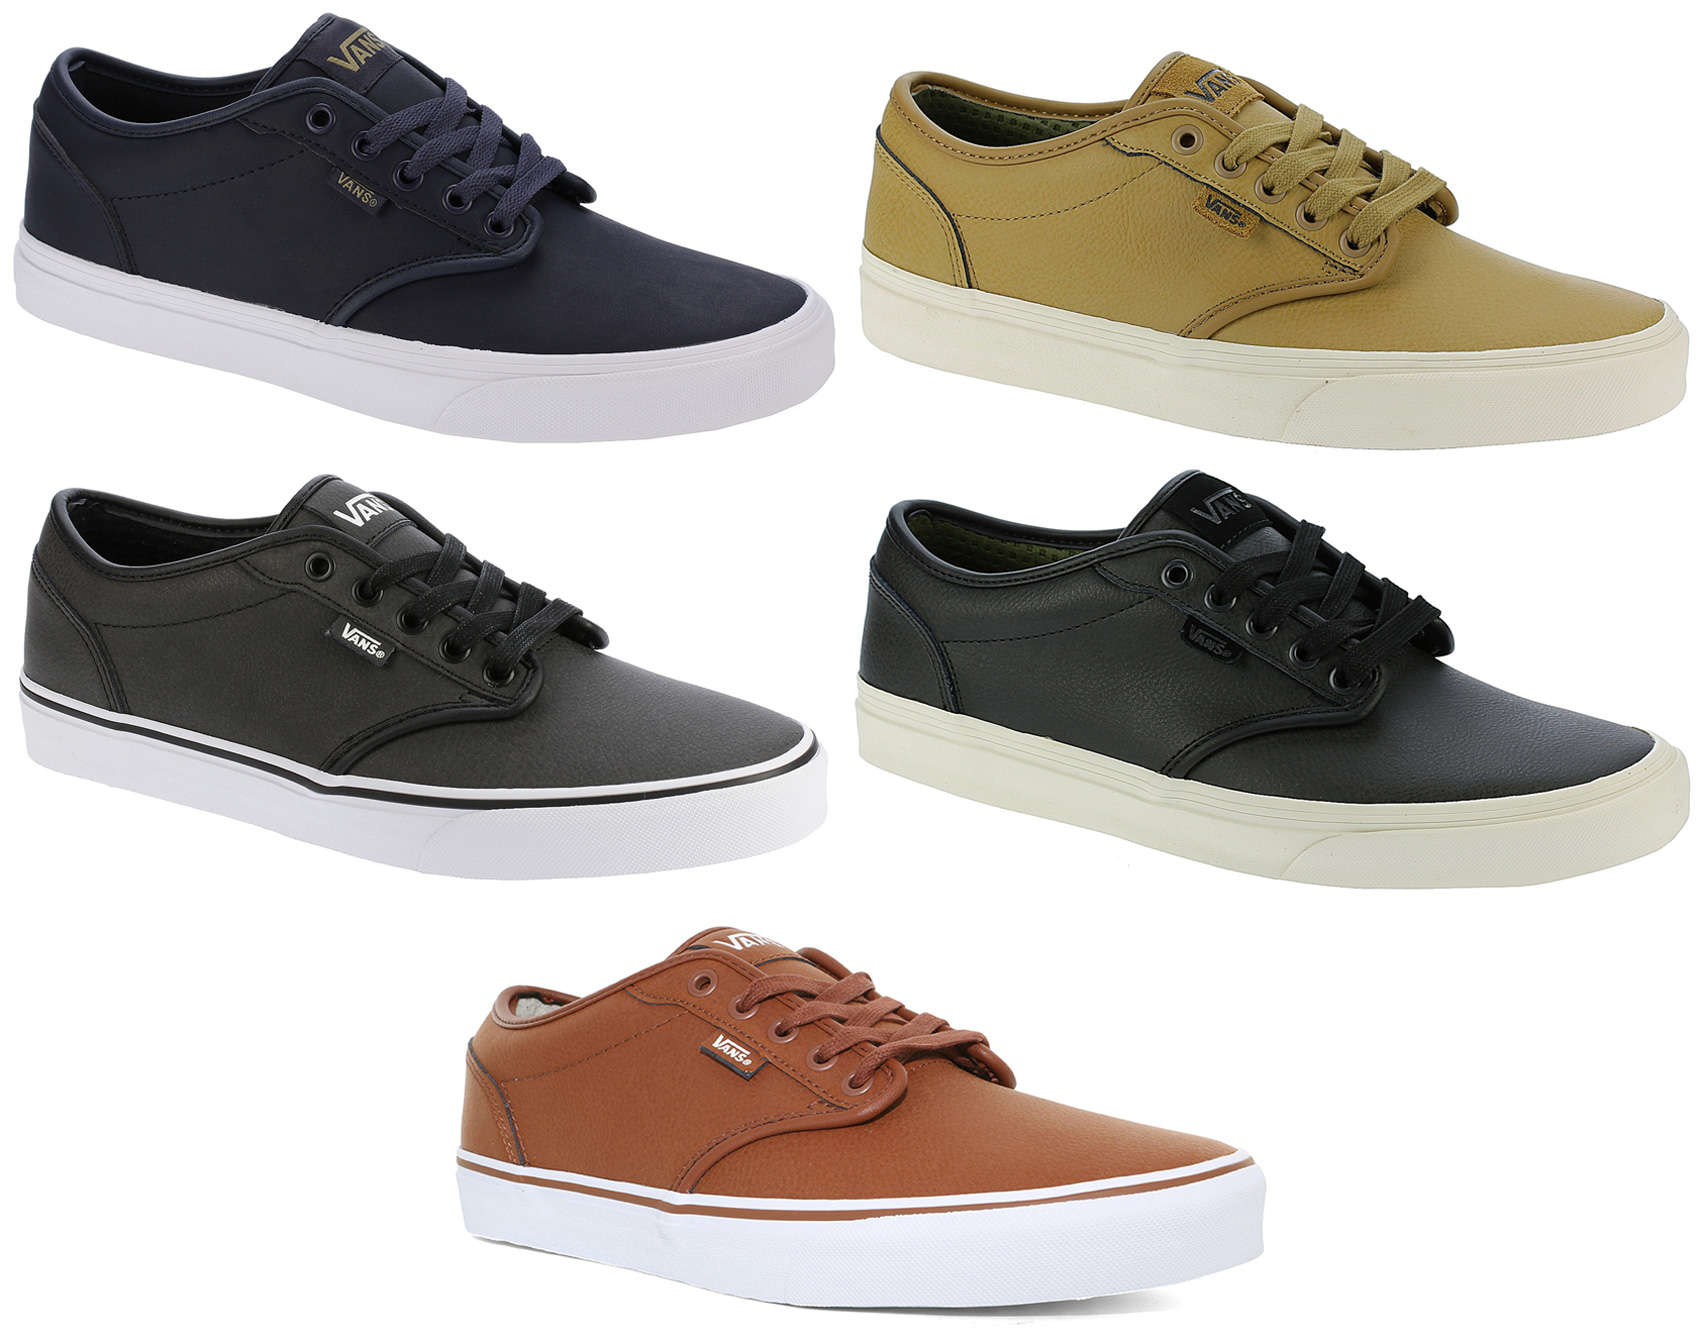 956a65956e Sentinel Vans Skate Shoes - Atwood - (Leather) Casual